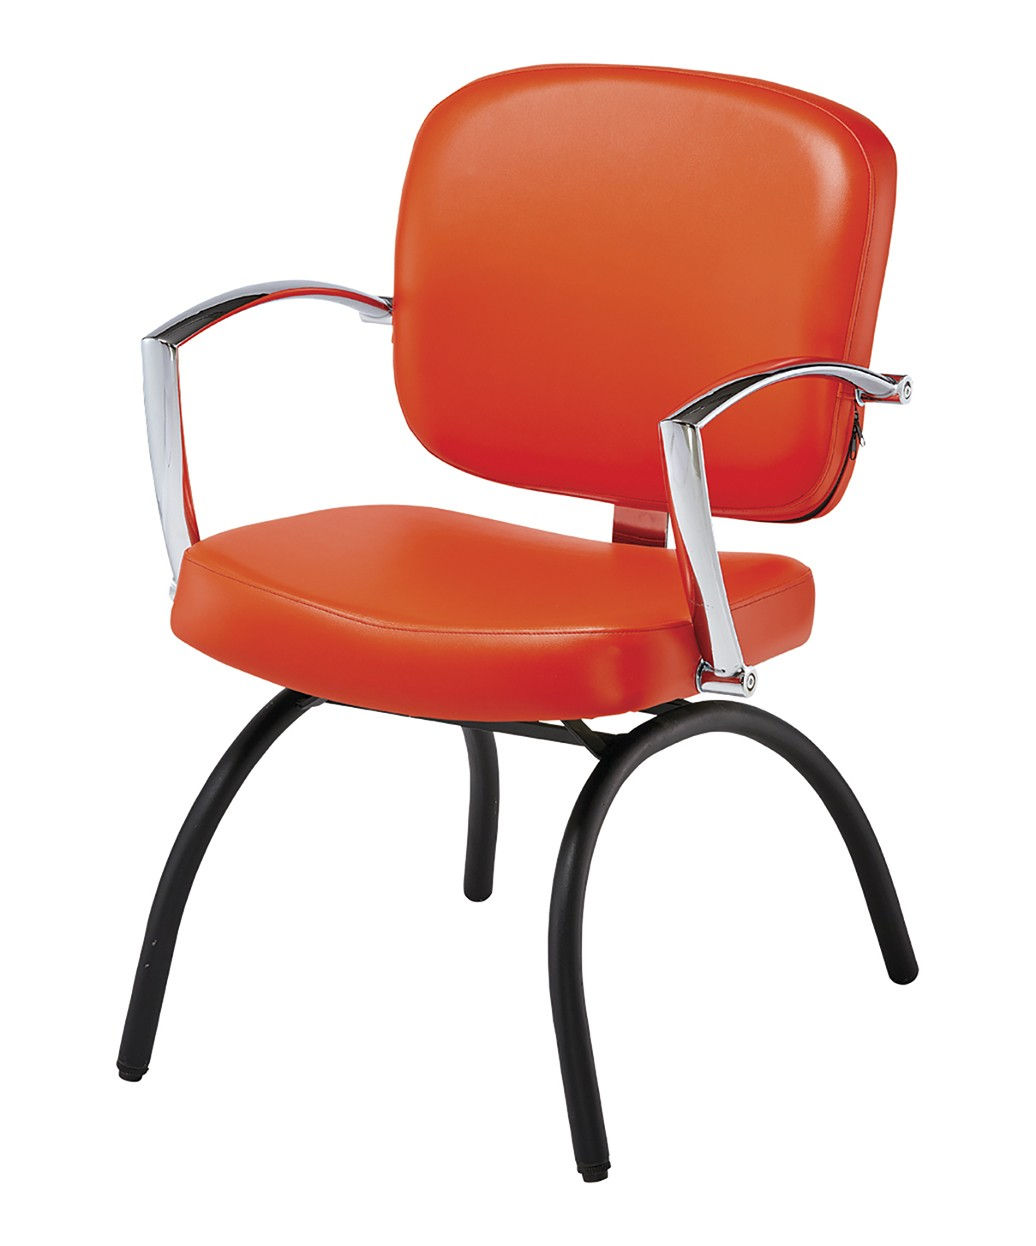 3720 Pisa Reception Chair